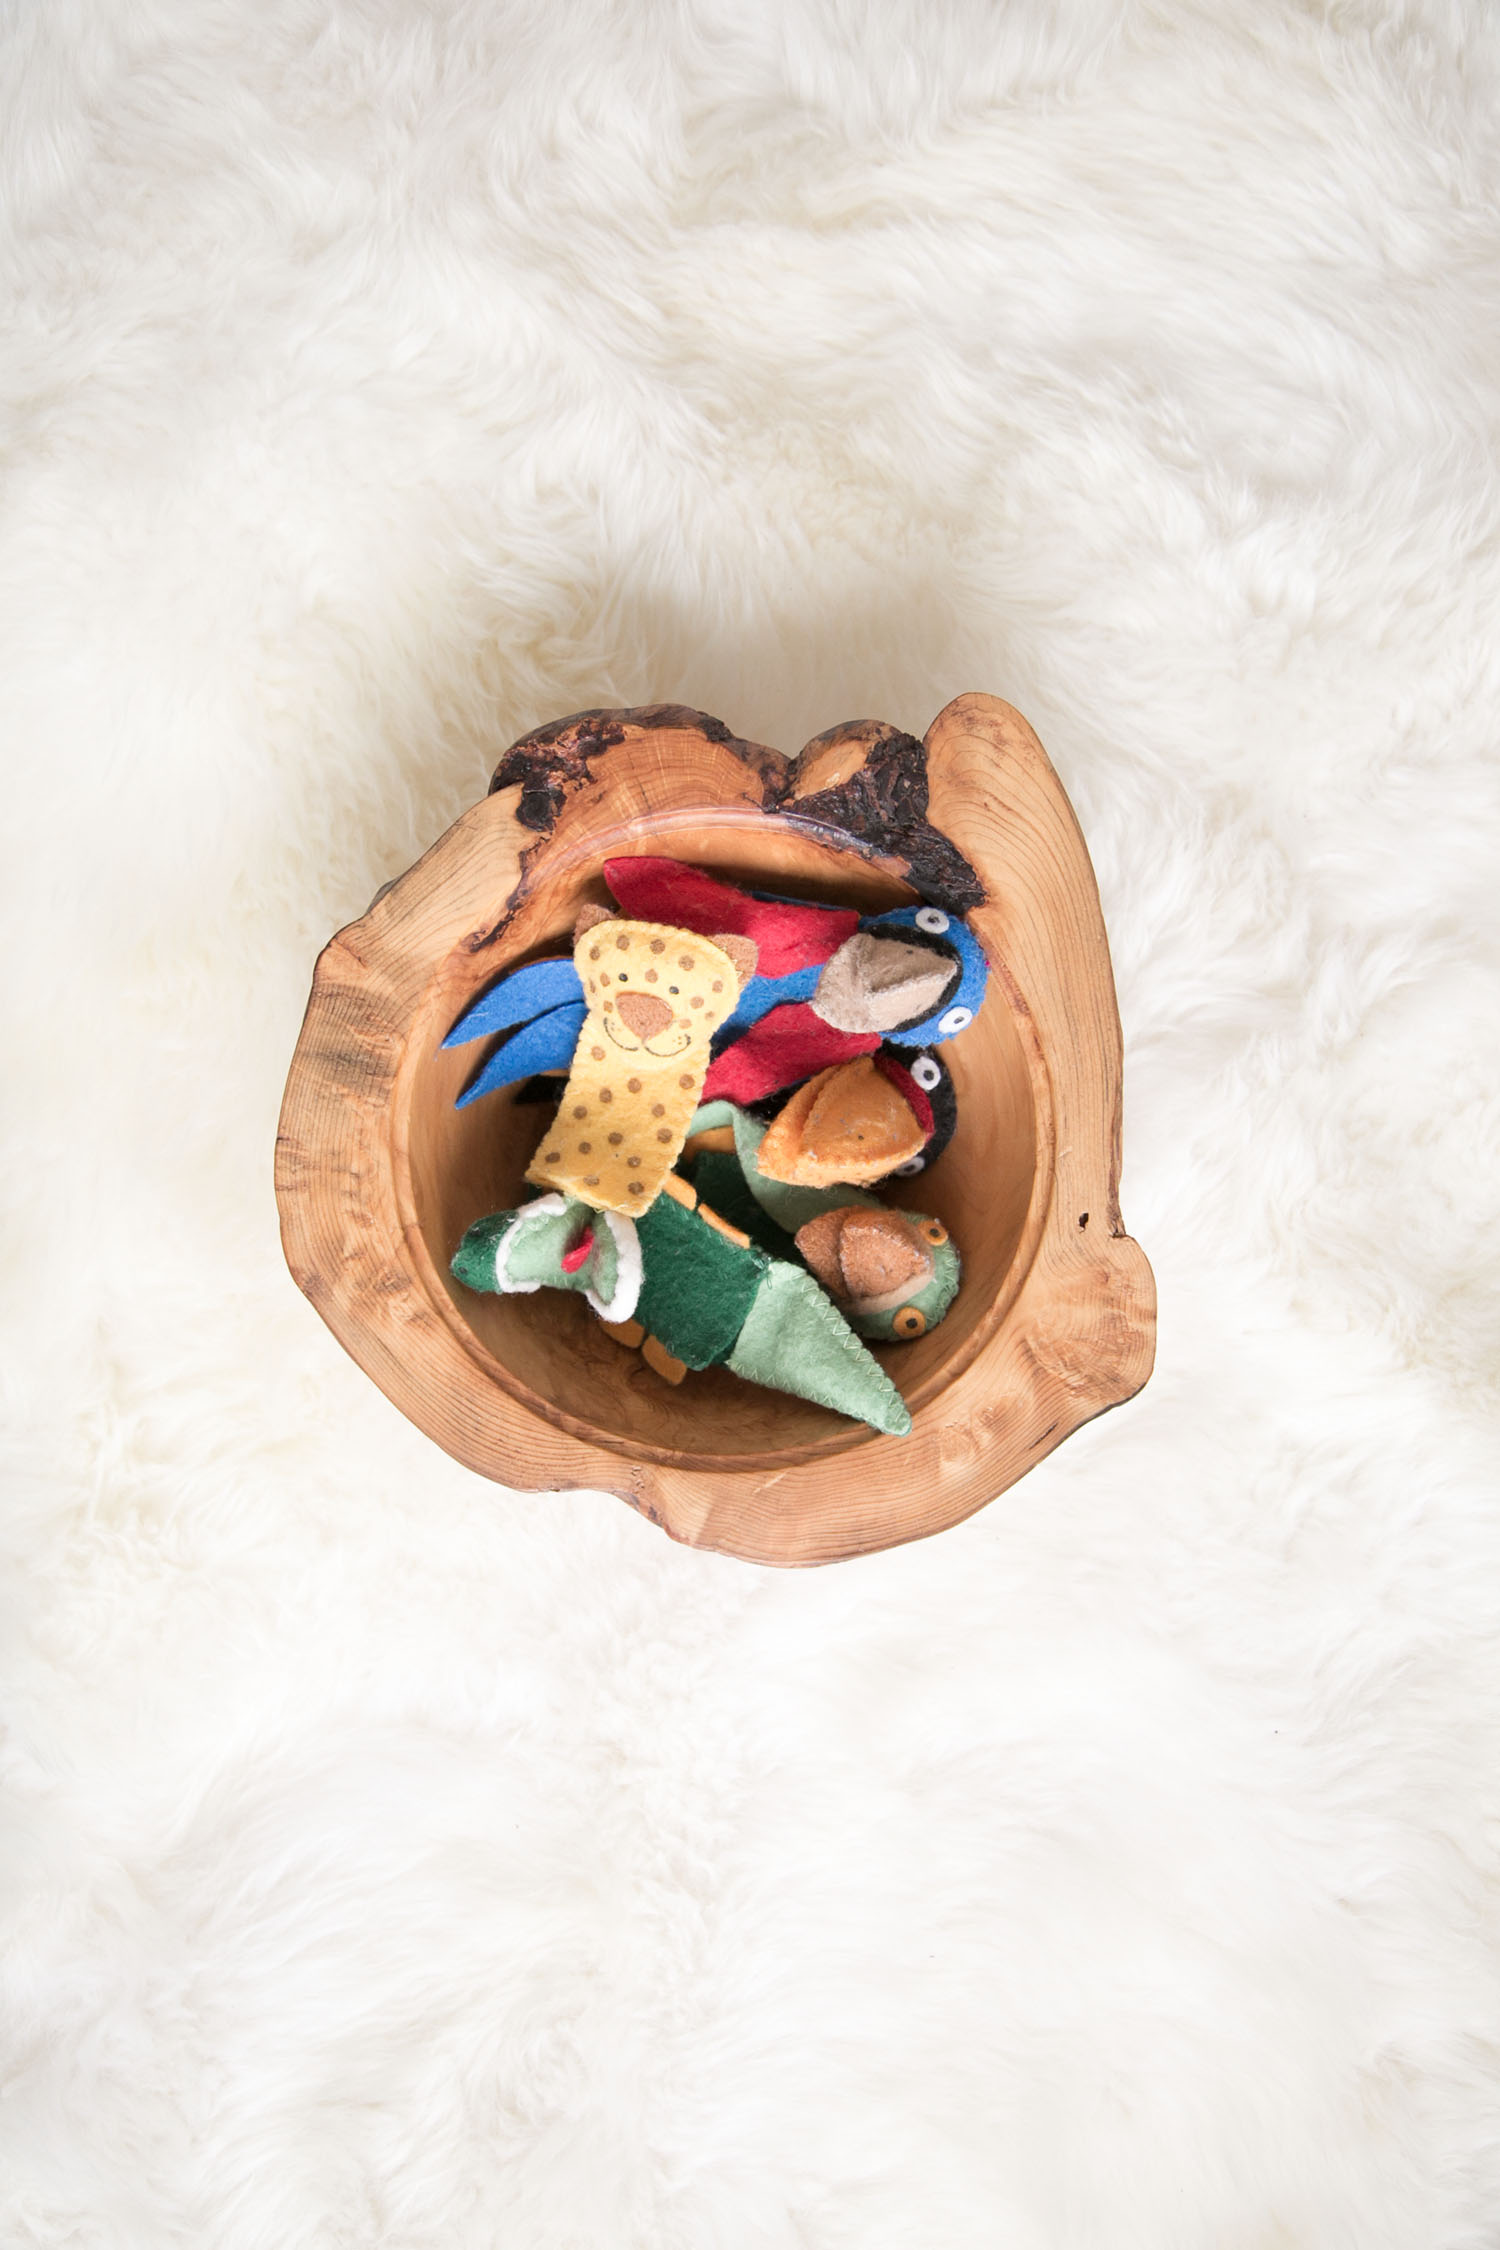 finger puppets in wood bowl